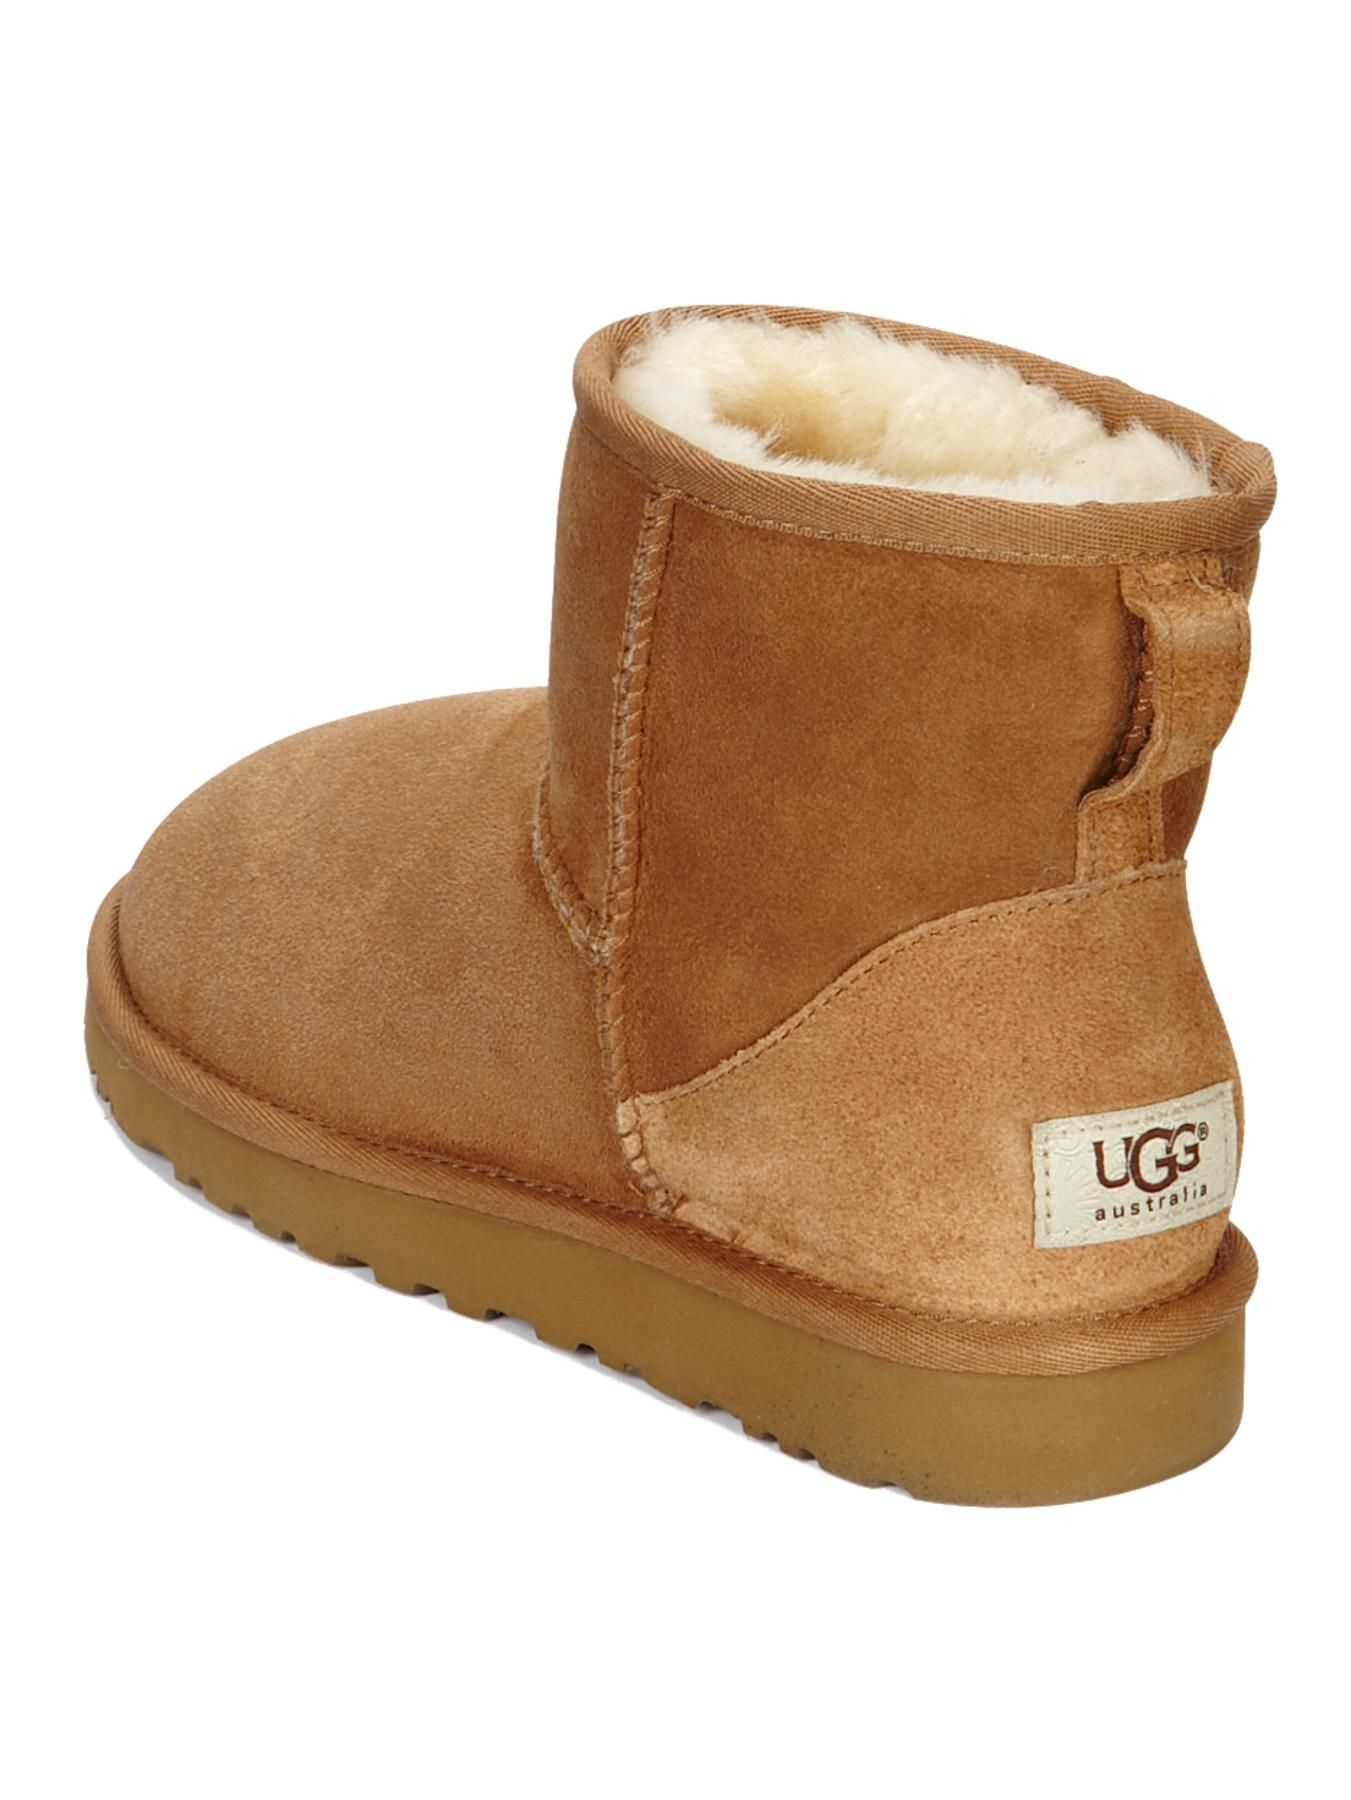 Ugg Classic Mini Ankle Boots Chestnut Ugg Boots Boots Ugg Classic Mini